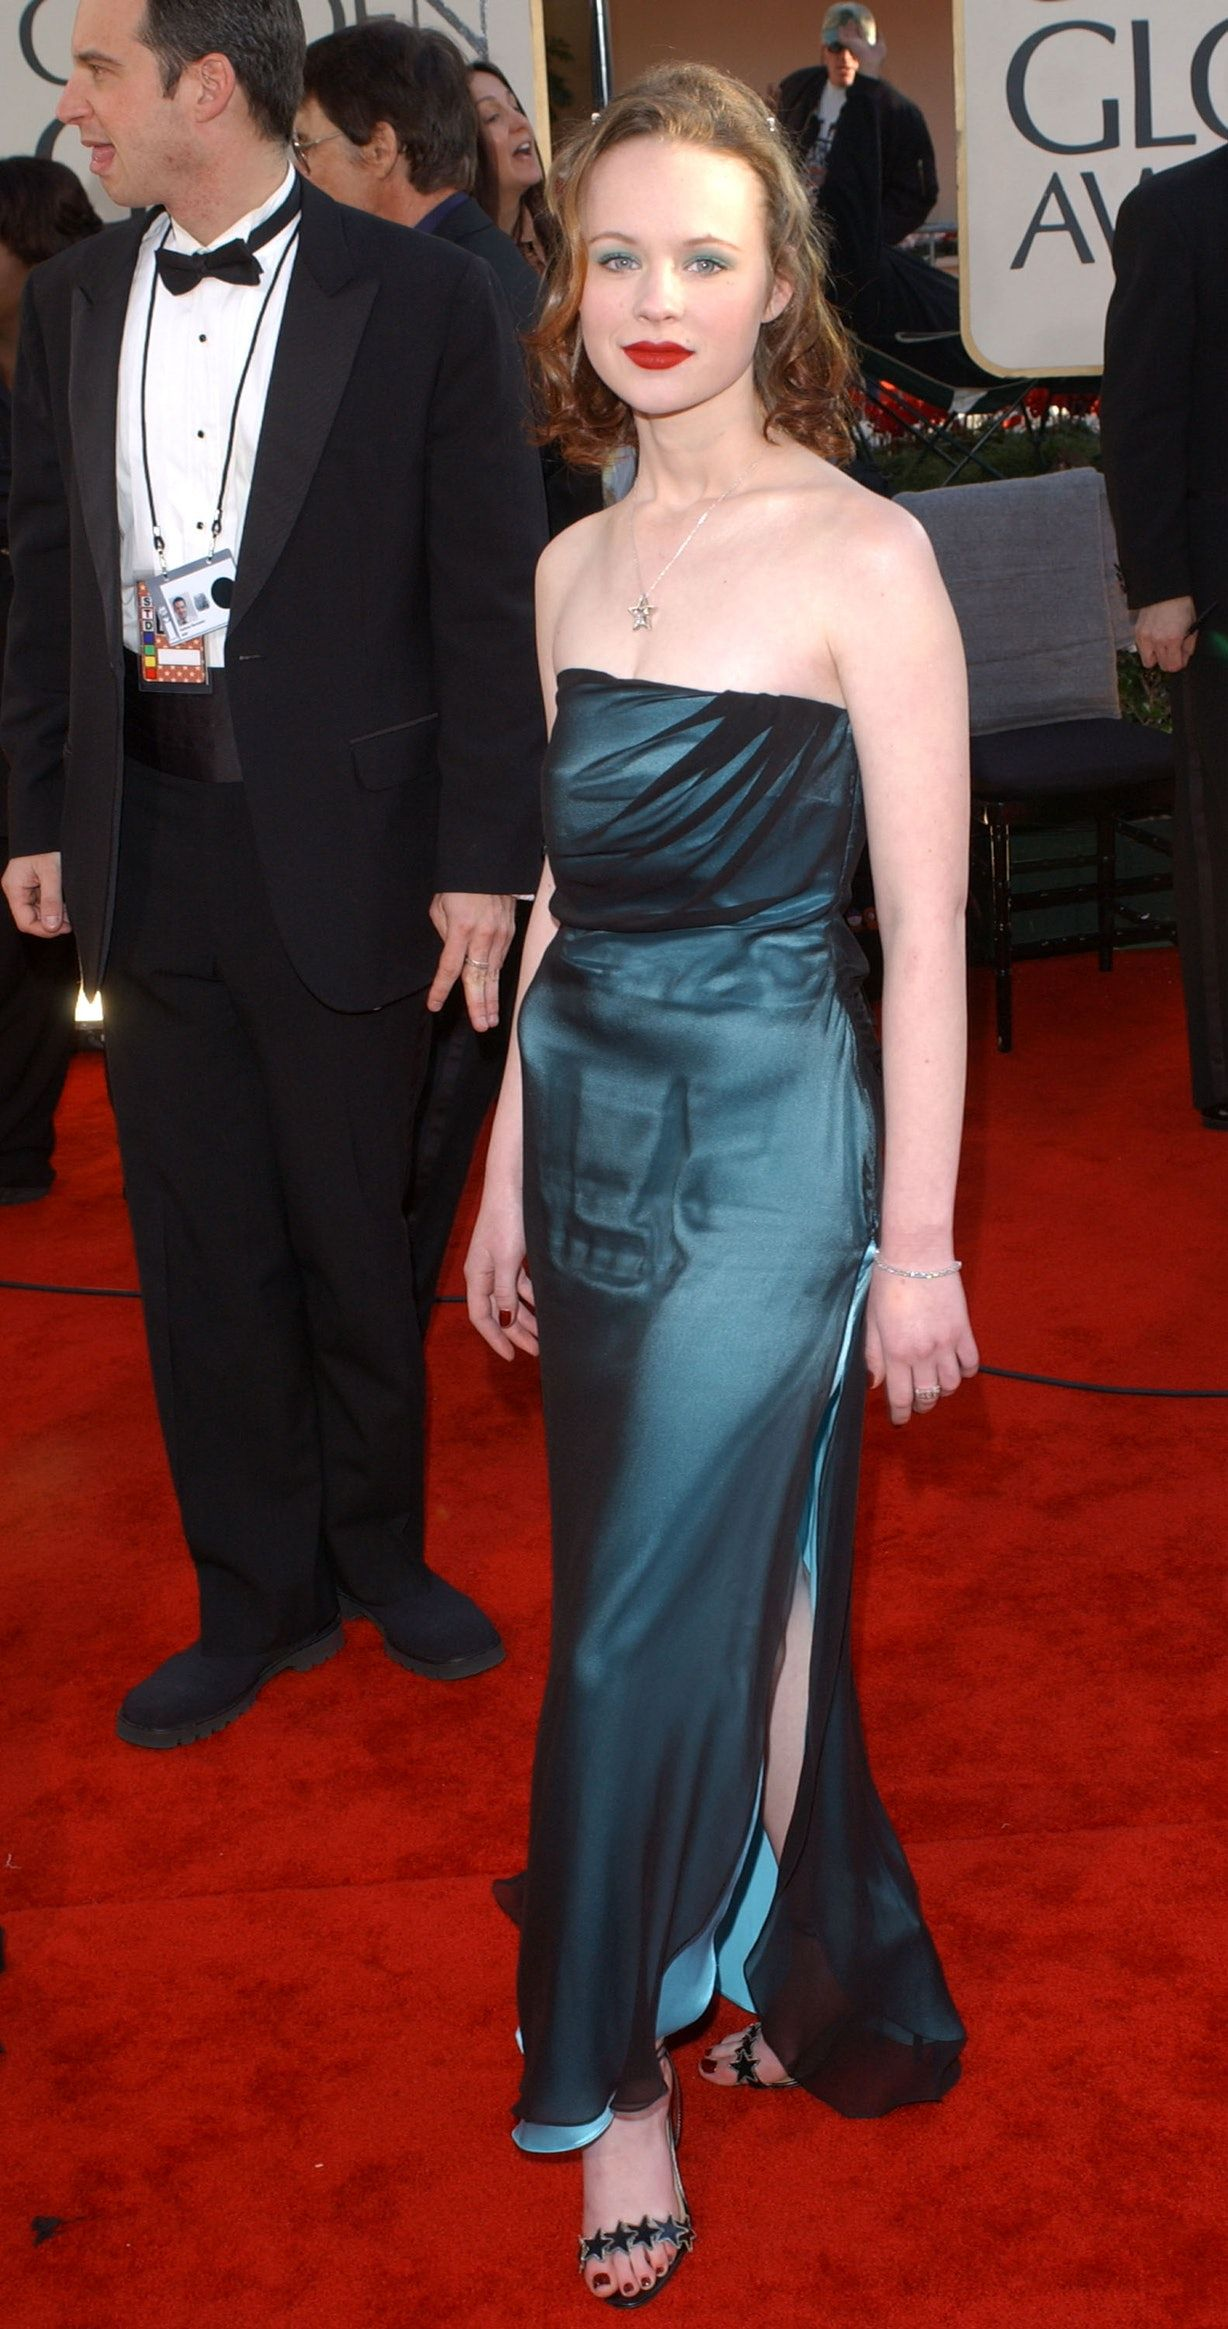 9 Terrible Prom Dress Trends From The Early 2000s That We Thought Were The Coolest Photos Prom Dress Trends 2000s Prom 2000s Prom Dress [ 2329 x 1228 Pixel ]